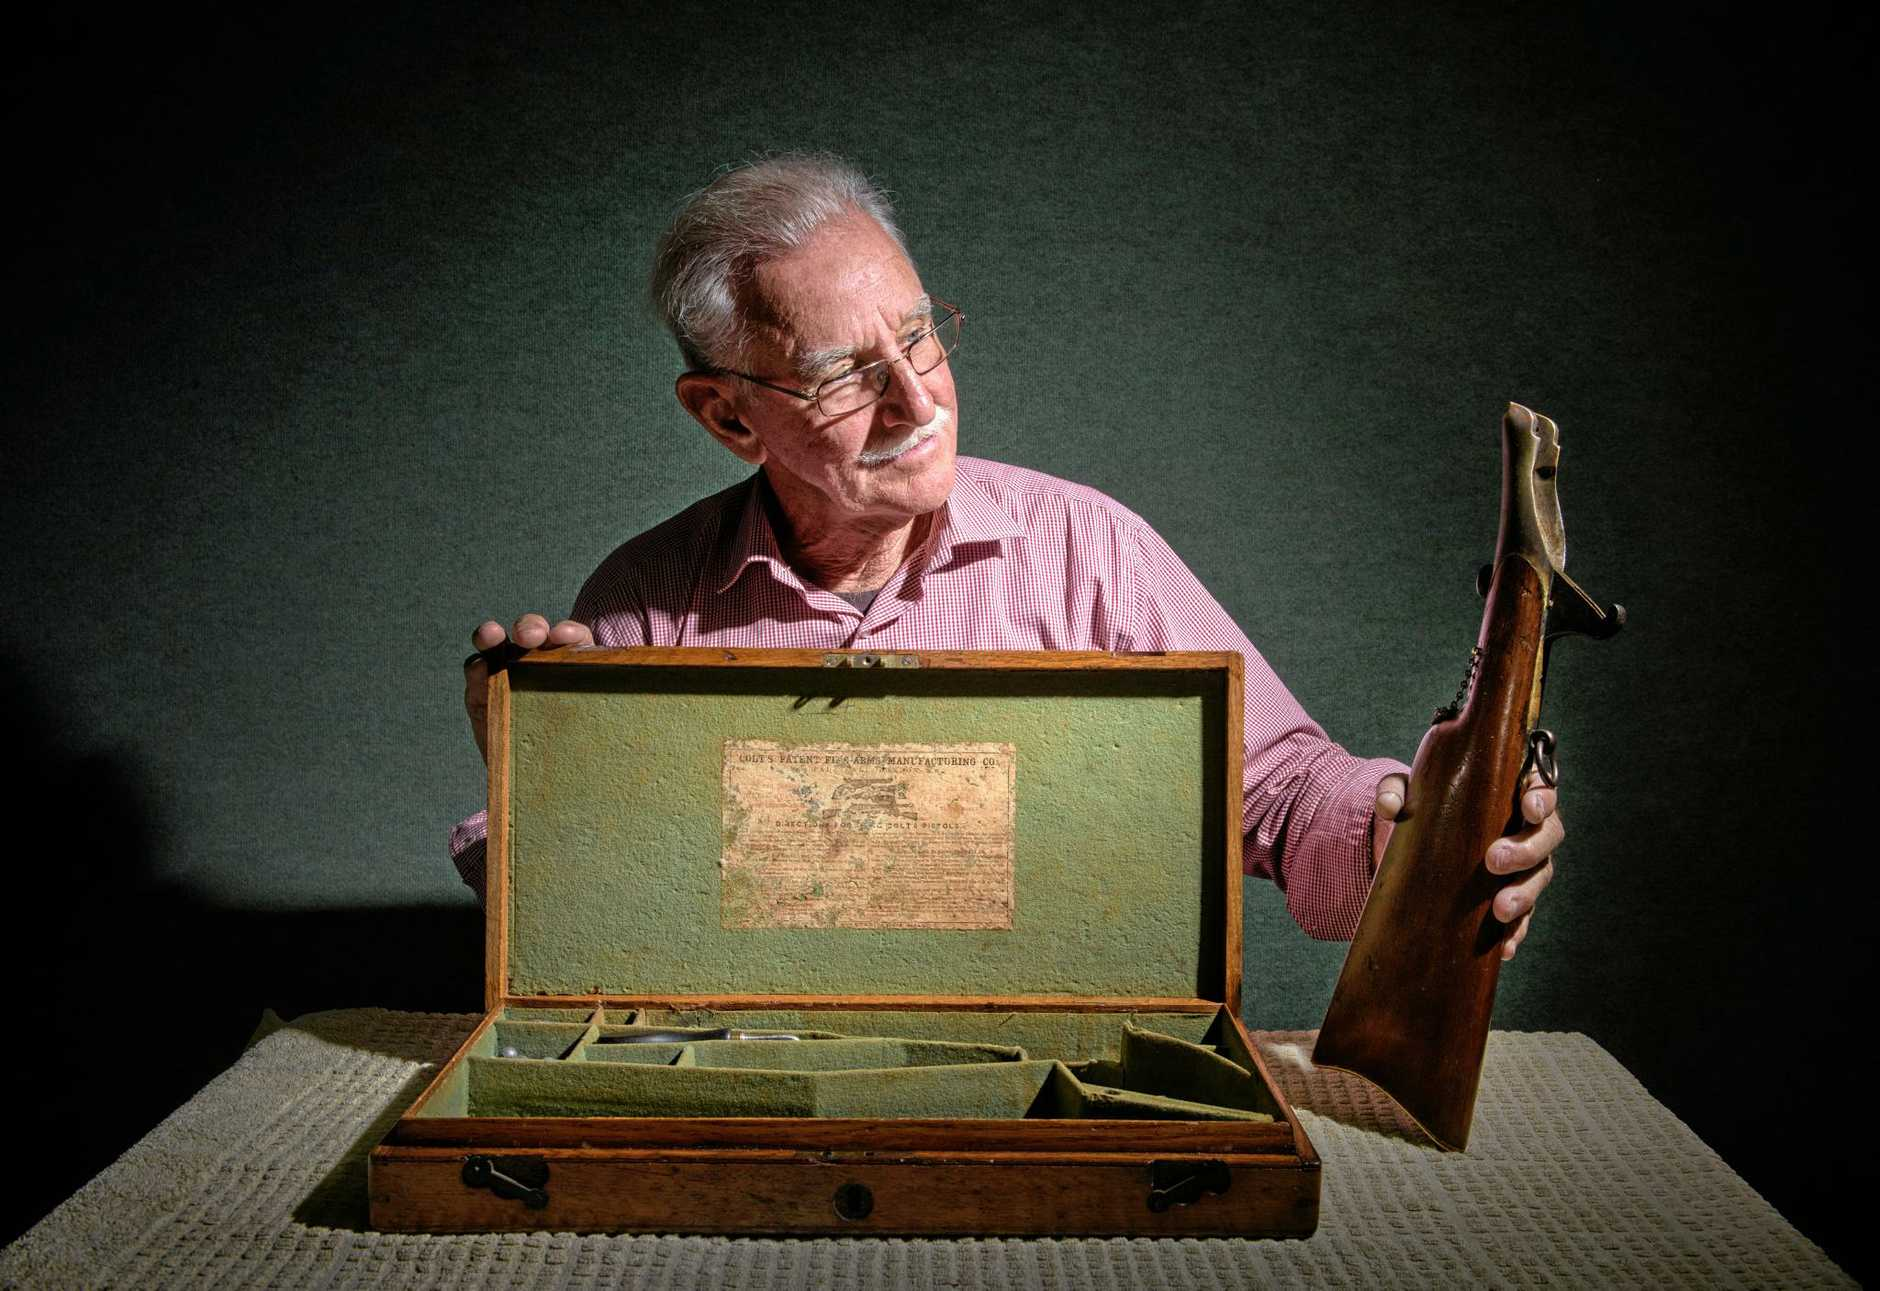 Bryan McGuren, is offering a $2000 reward for the return of his family's antique pistol missing from Schaeffer House.